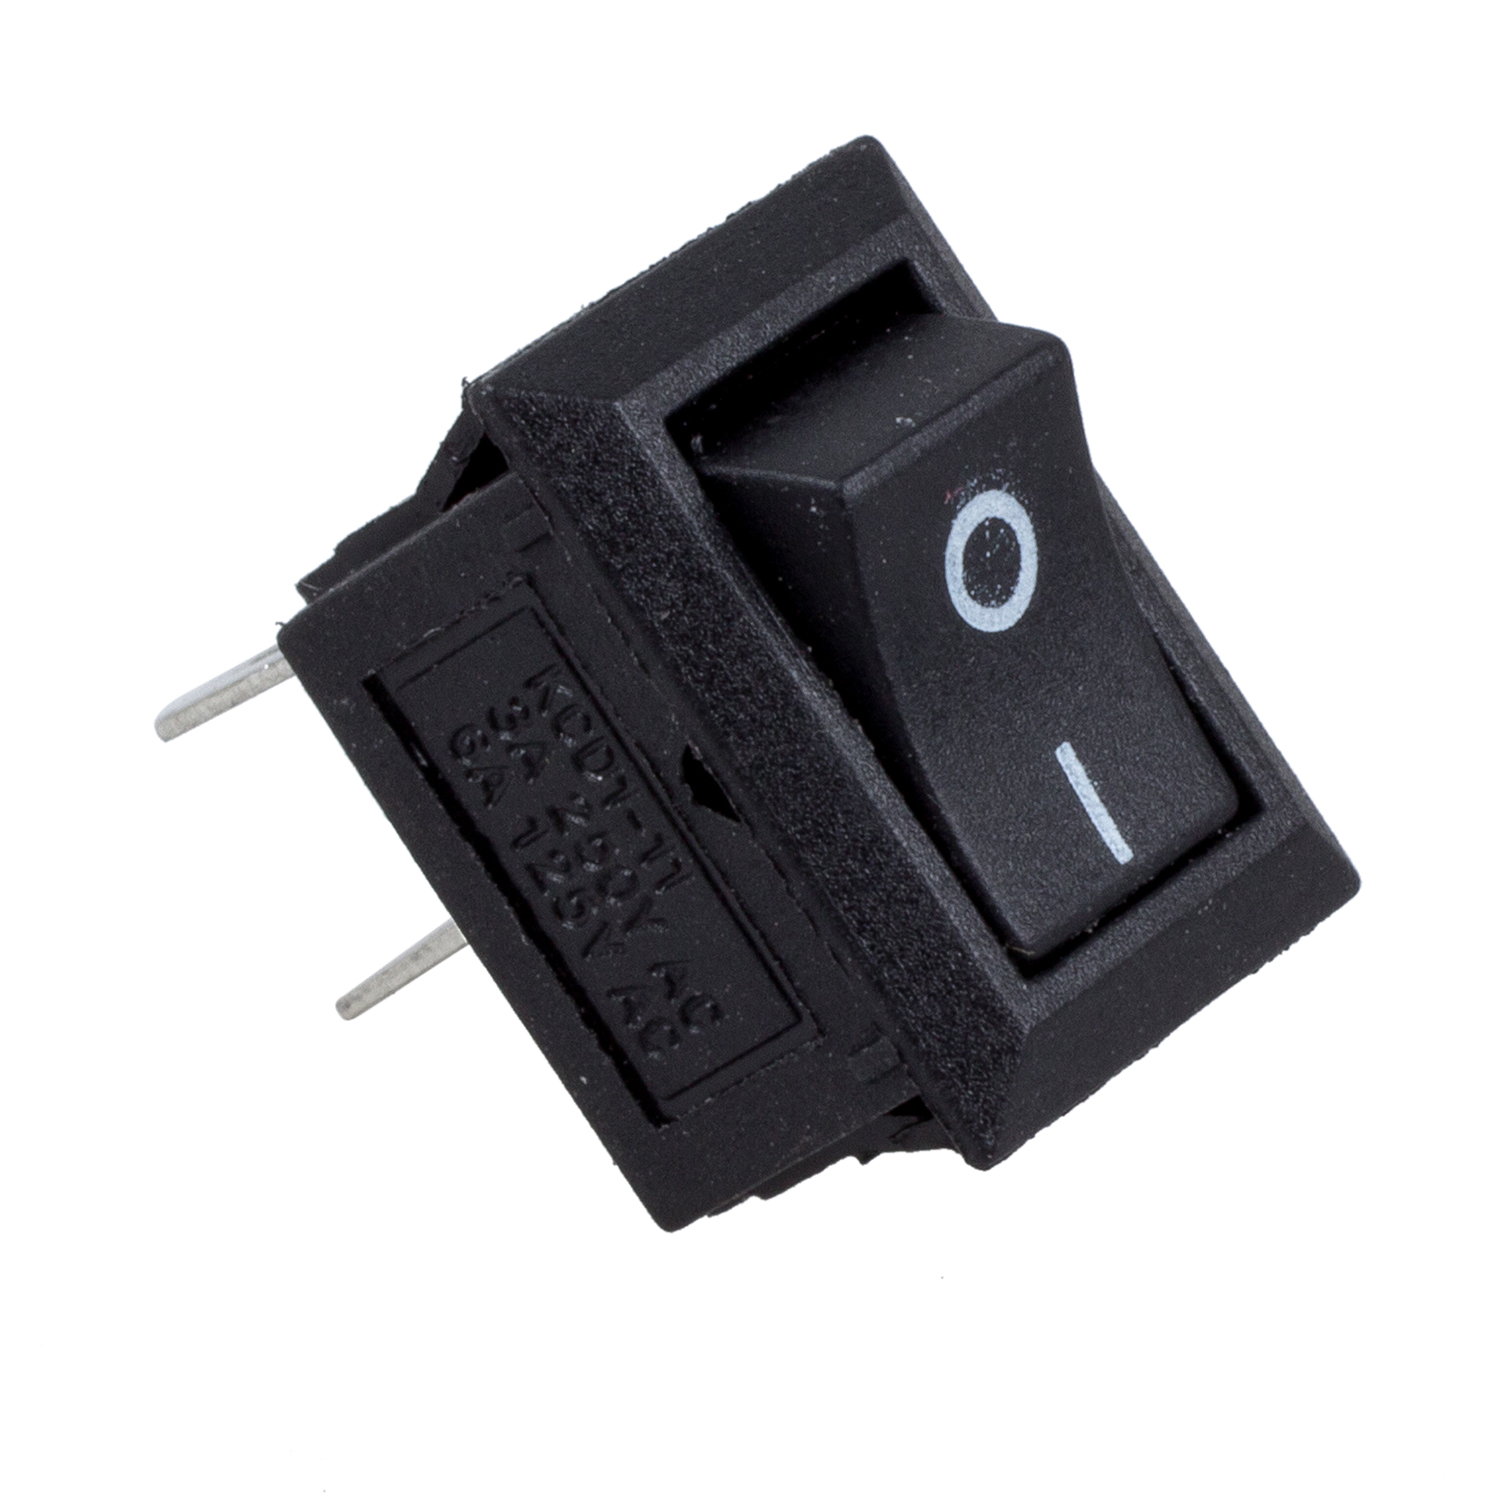 High Quality 5Pcs/Lot 2 Pin Snap-in On/Off Position Snap Boat Button Switch 12V/110V/250V 5 pieces lot ac 6a 250v 10a 125v 5x 6pin dpdt on off on position snap boat rocker switches